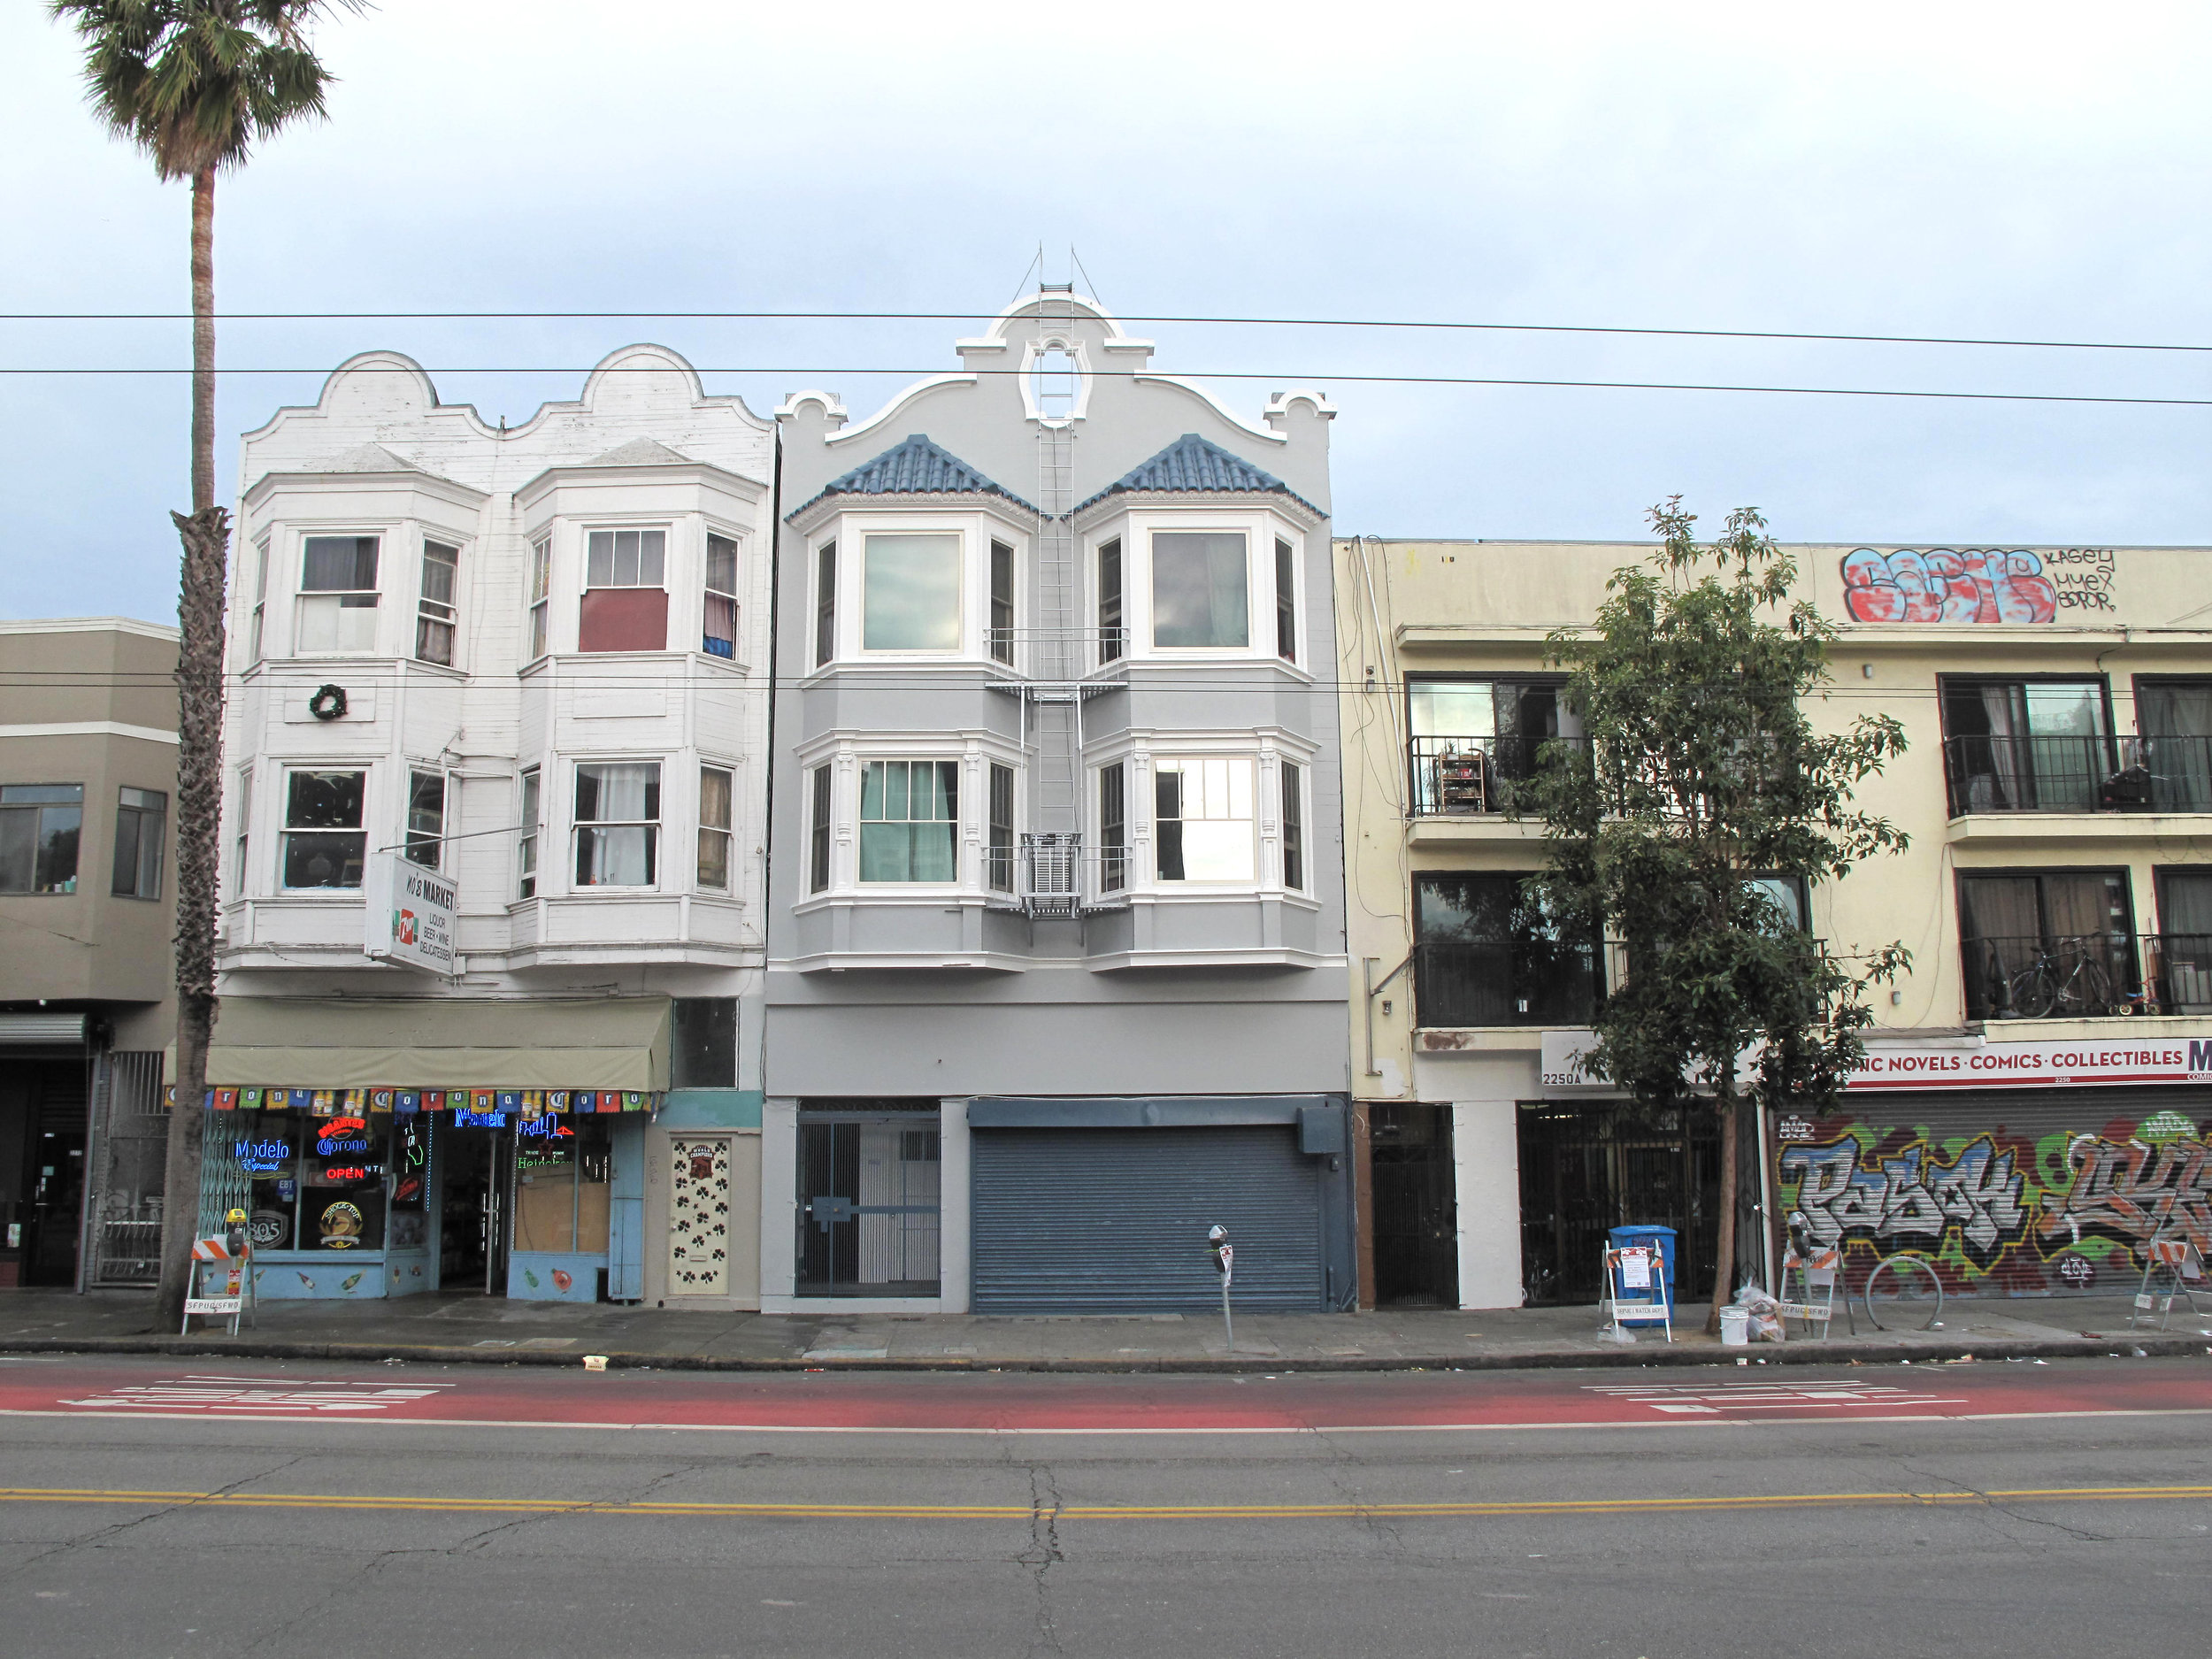 2260-2262 Mission Street - For Sale: $2,498,8887-Unit MIXED USE BUILDING | INNER MISSIONBuilding Square Feet: 5,118 (per tax records)